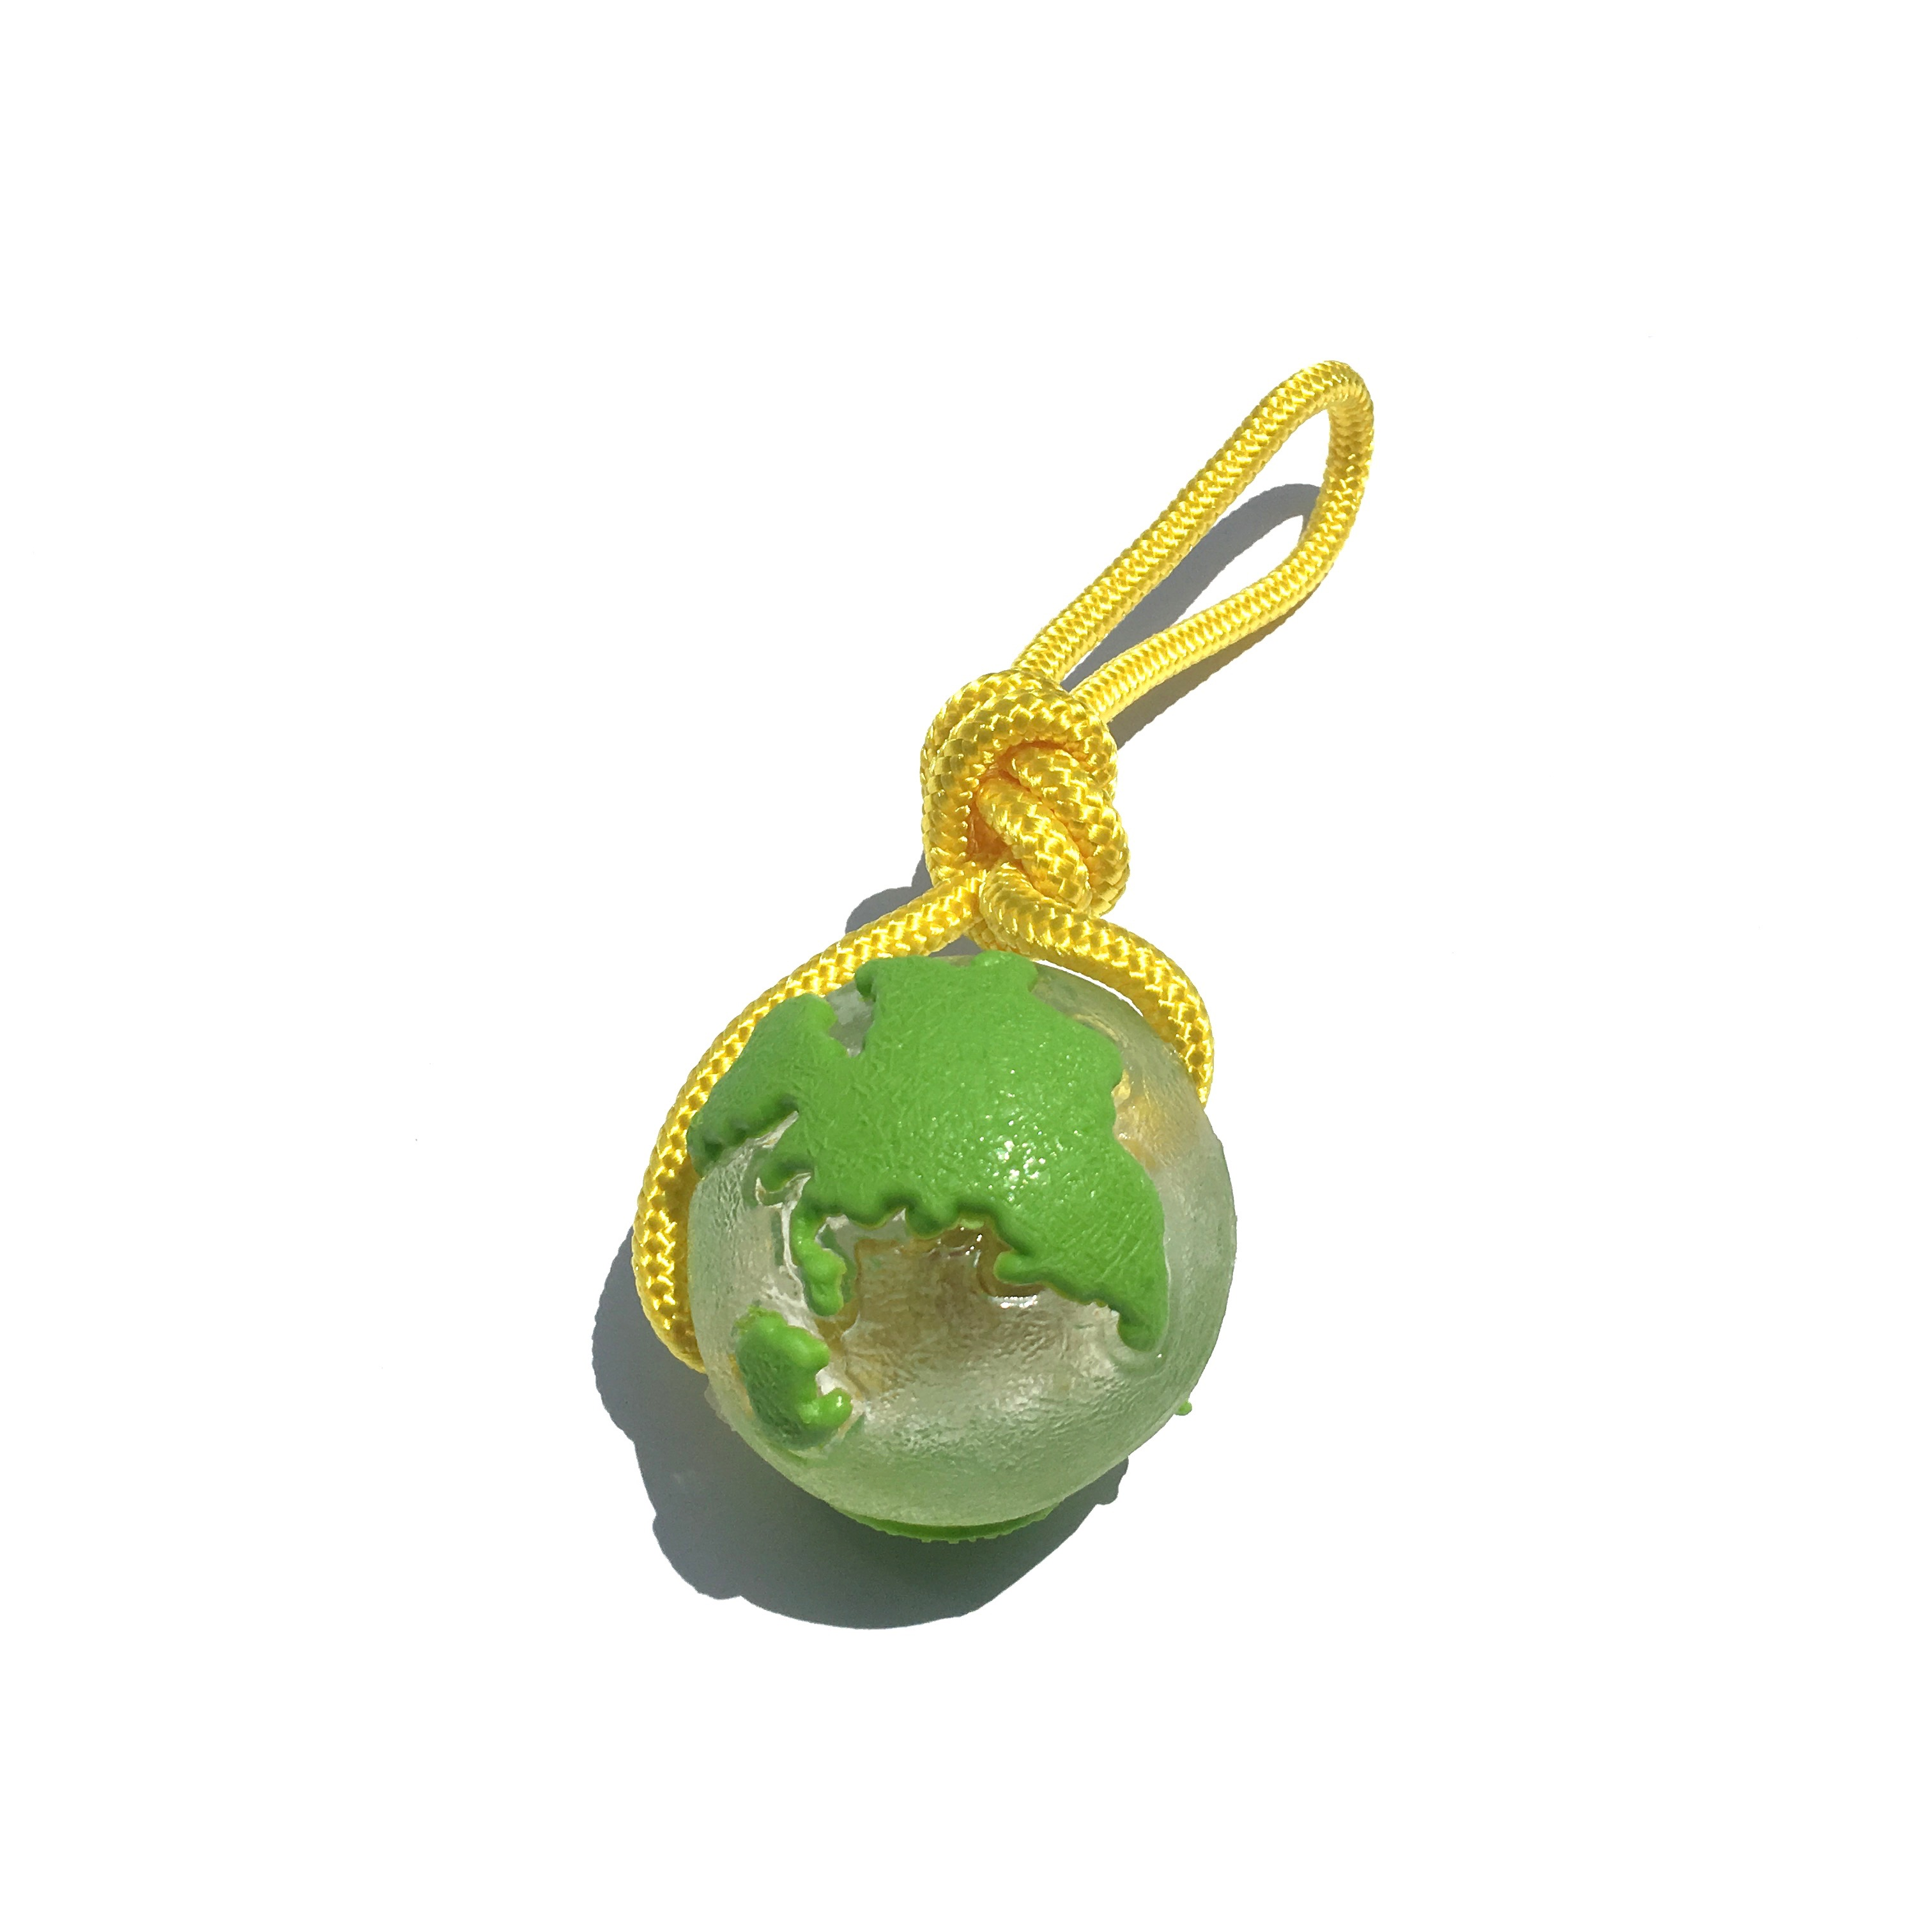 PLANET DOG Orbee-Tuff Ball with ROPE  プラネットドッグ オービータフ ボール ウィズ ロープ 限定色_d0217958_12101598.jpg